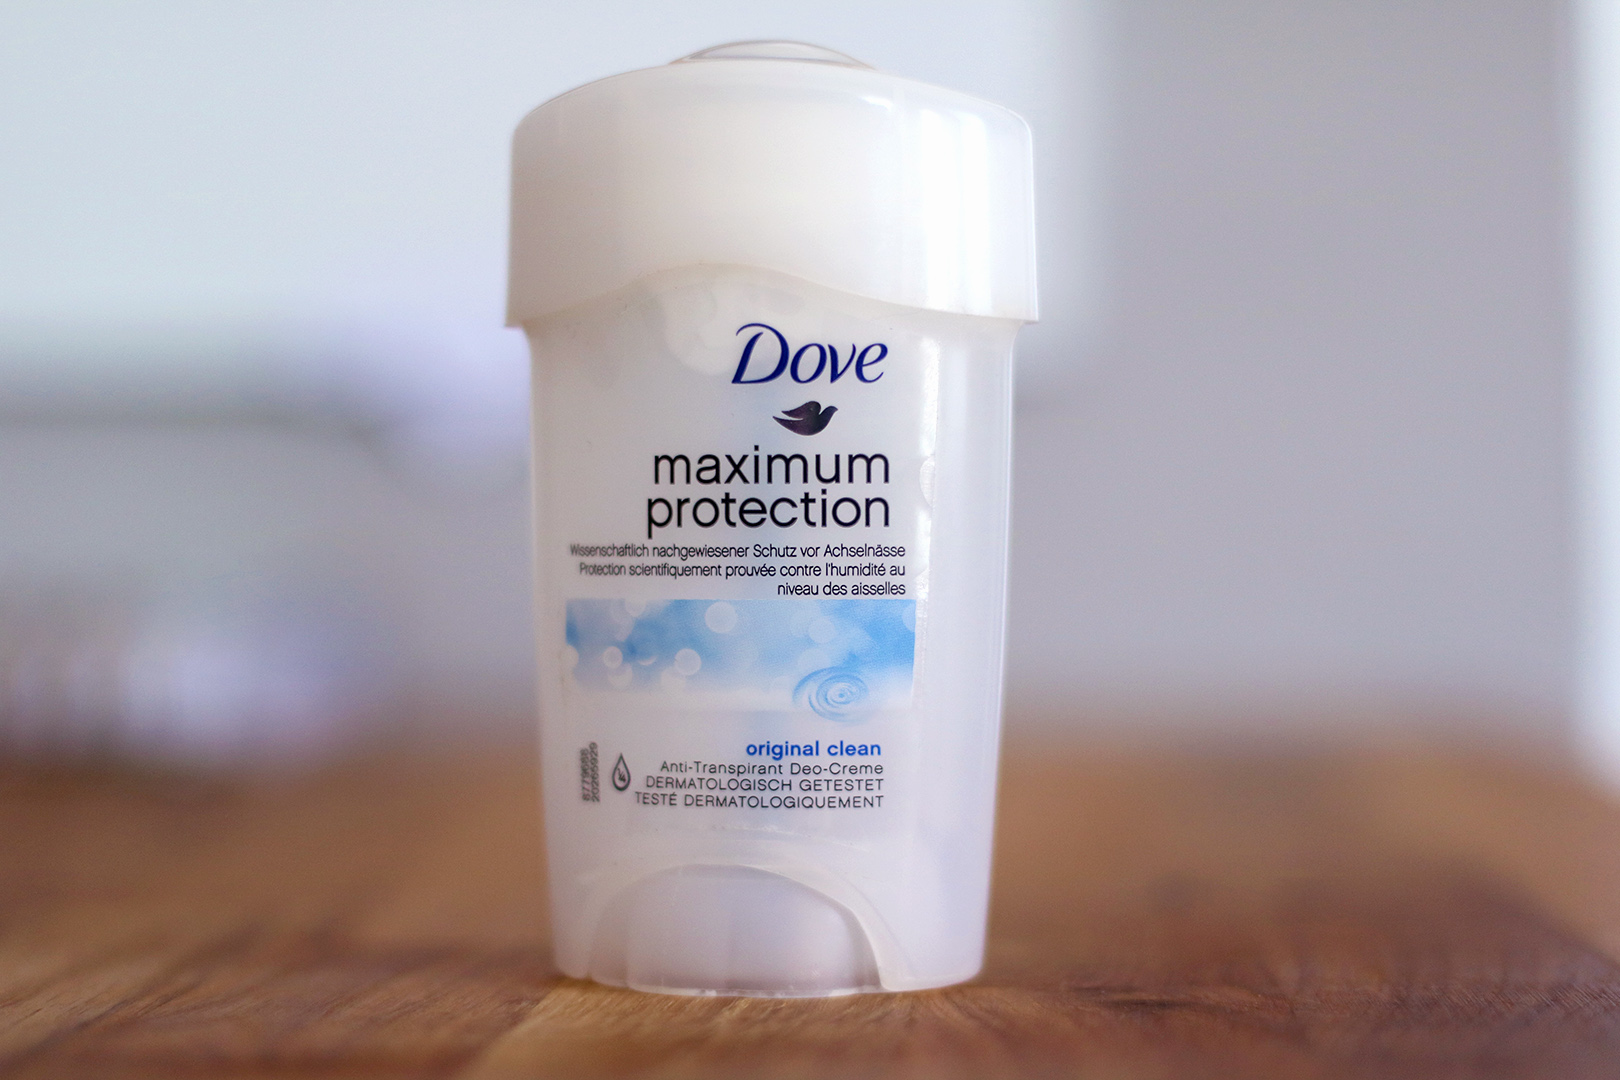 Deo Dove Maximum Protection Aufgebraucht Beauty Naturkometik Review Erfahrungsbericht Beauty Blog Berlin Advanceyourstyle